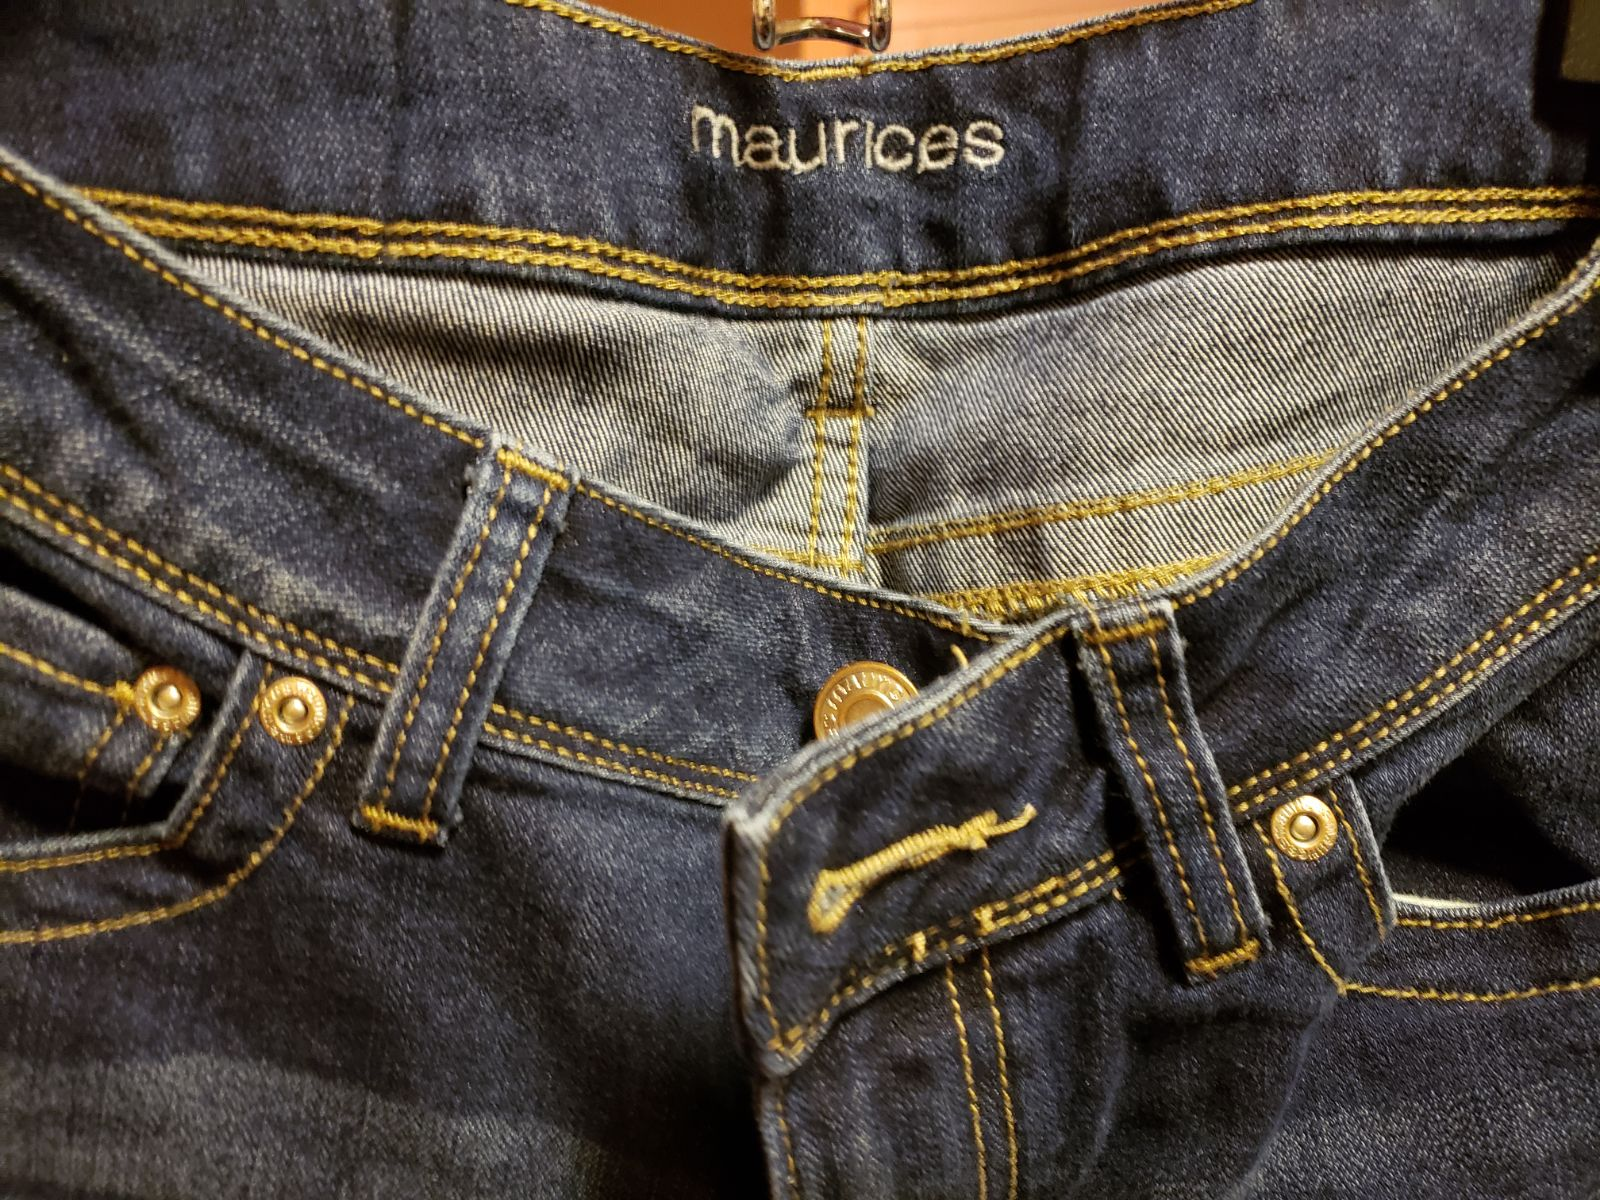 Womens Maurices Jeans